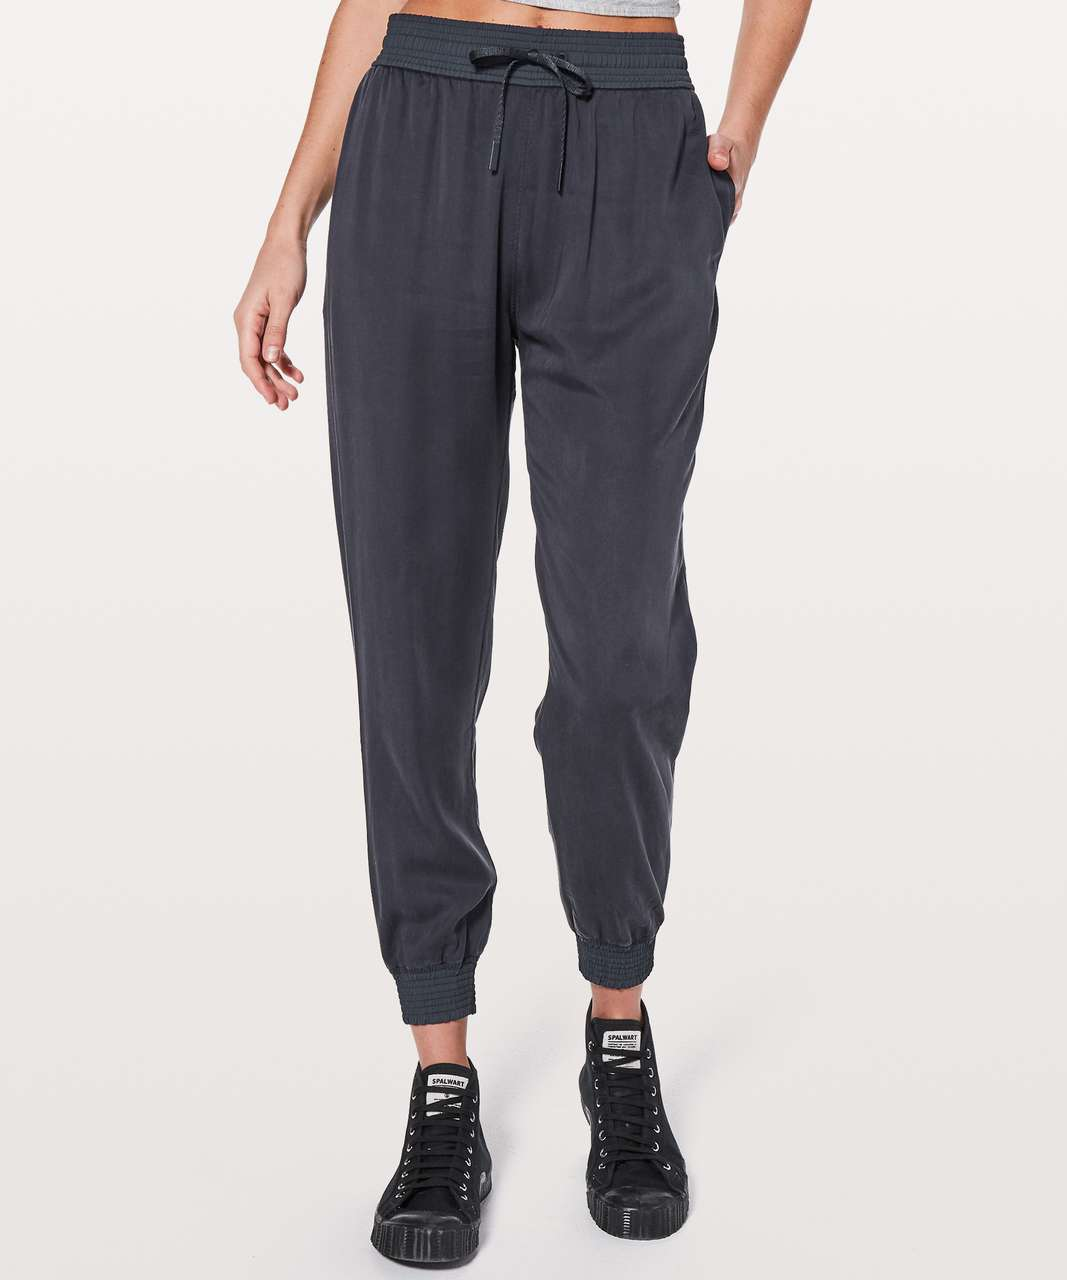 "Lululemon Ease Of Mind Pant *27"" - Black Night"